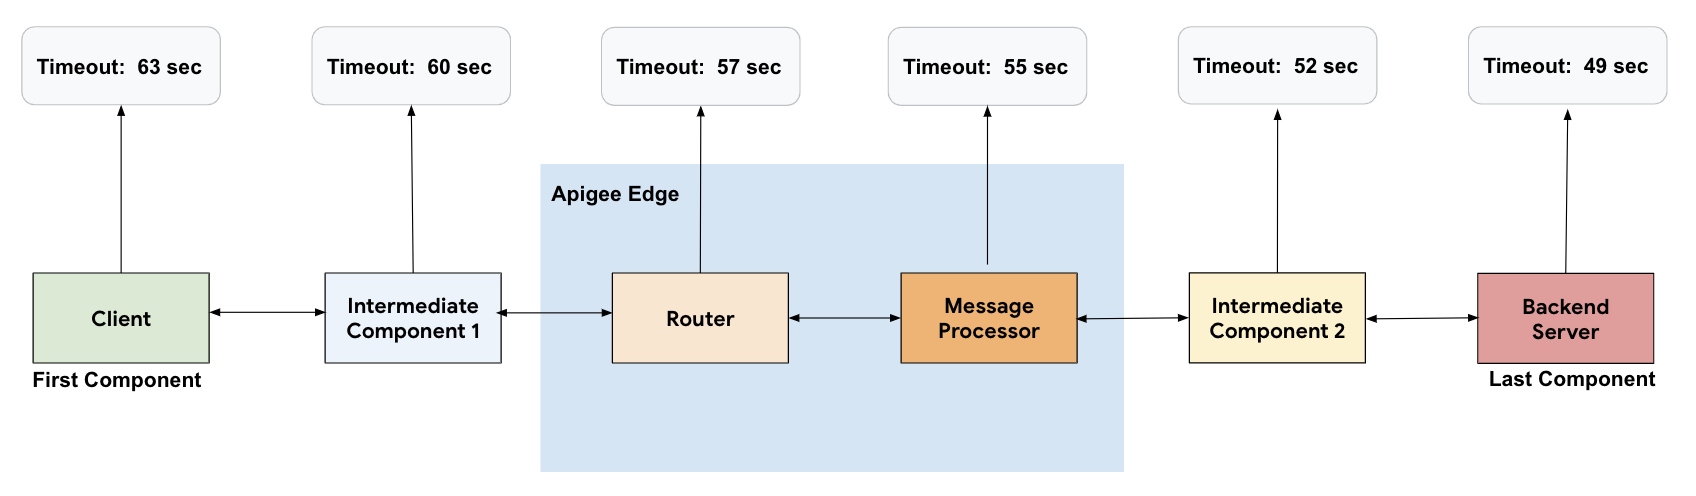 Flow starting at Client going to Intermediate Component 1 and then to Router and then to Message Processor and then to Intermediate Component 2 and then to Backend Server